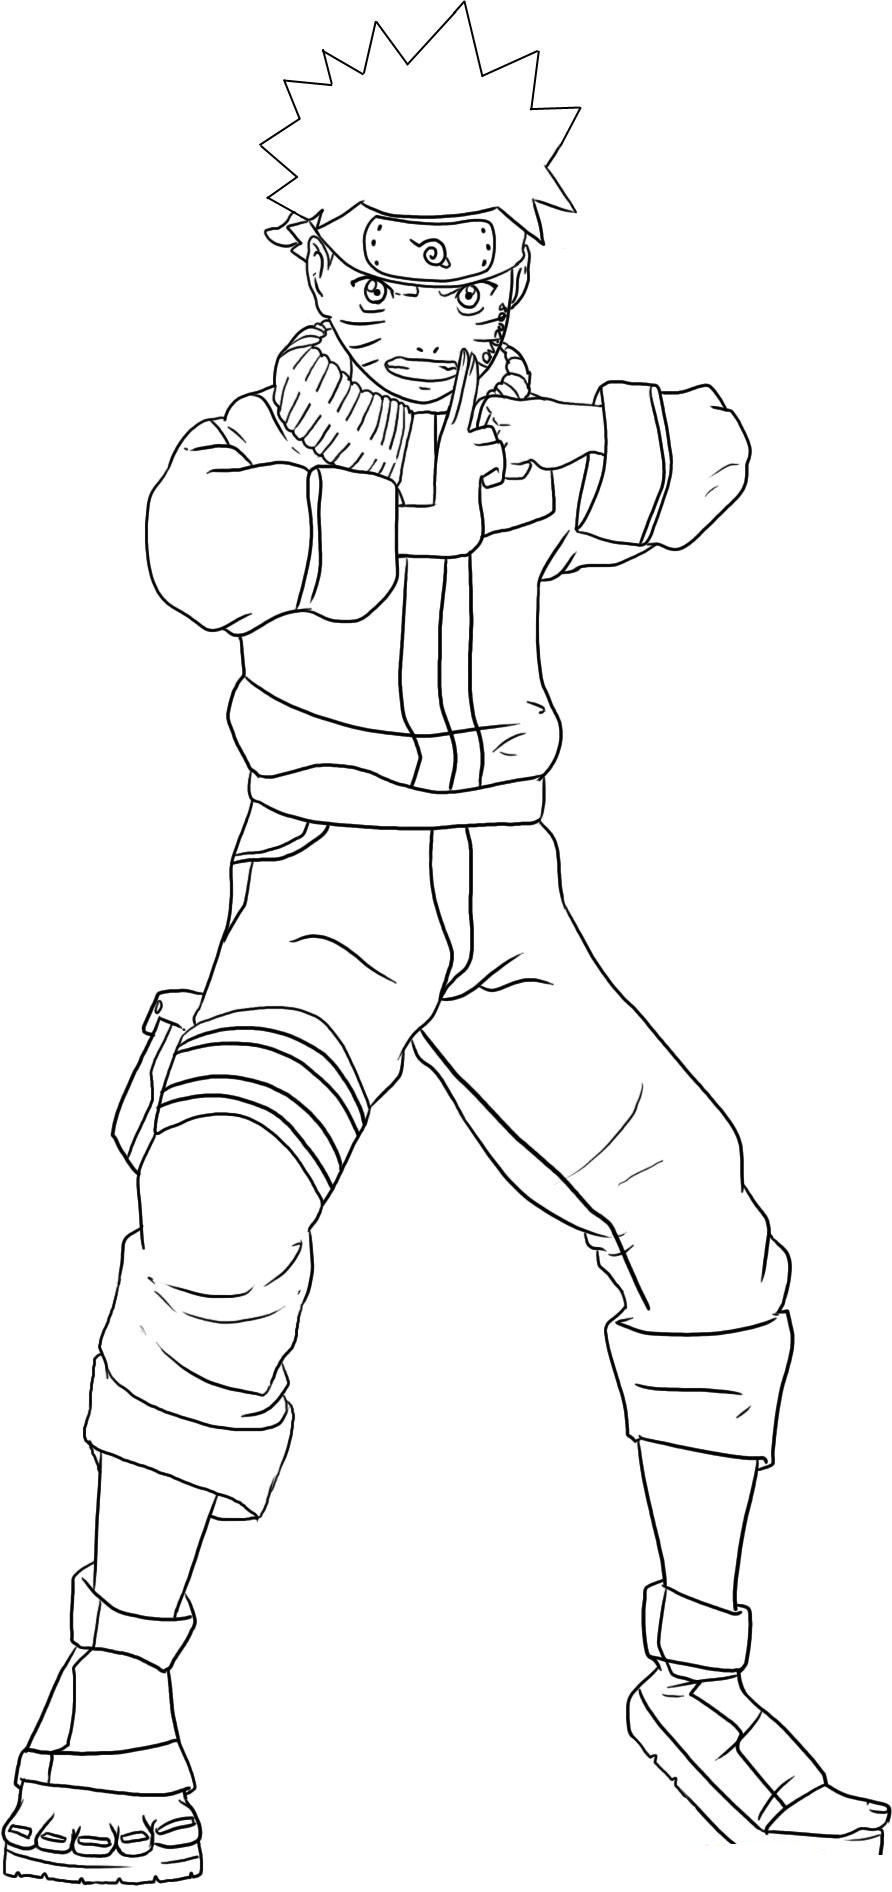 coloring pages of naruto naruto to color for children naruto kids coloring pages naruto pages of coloring